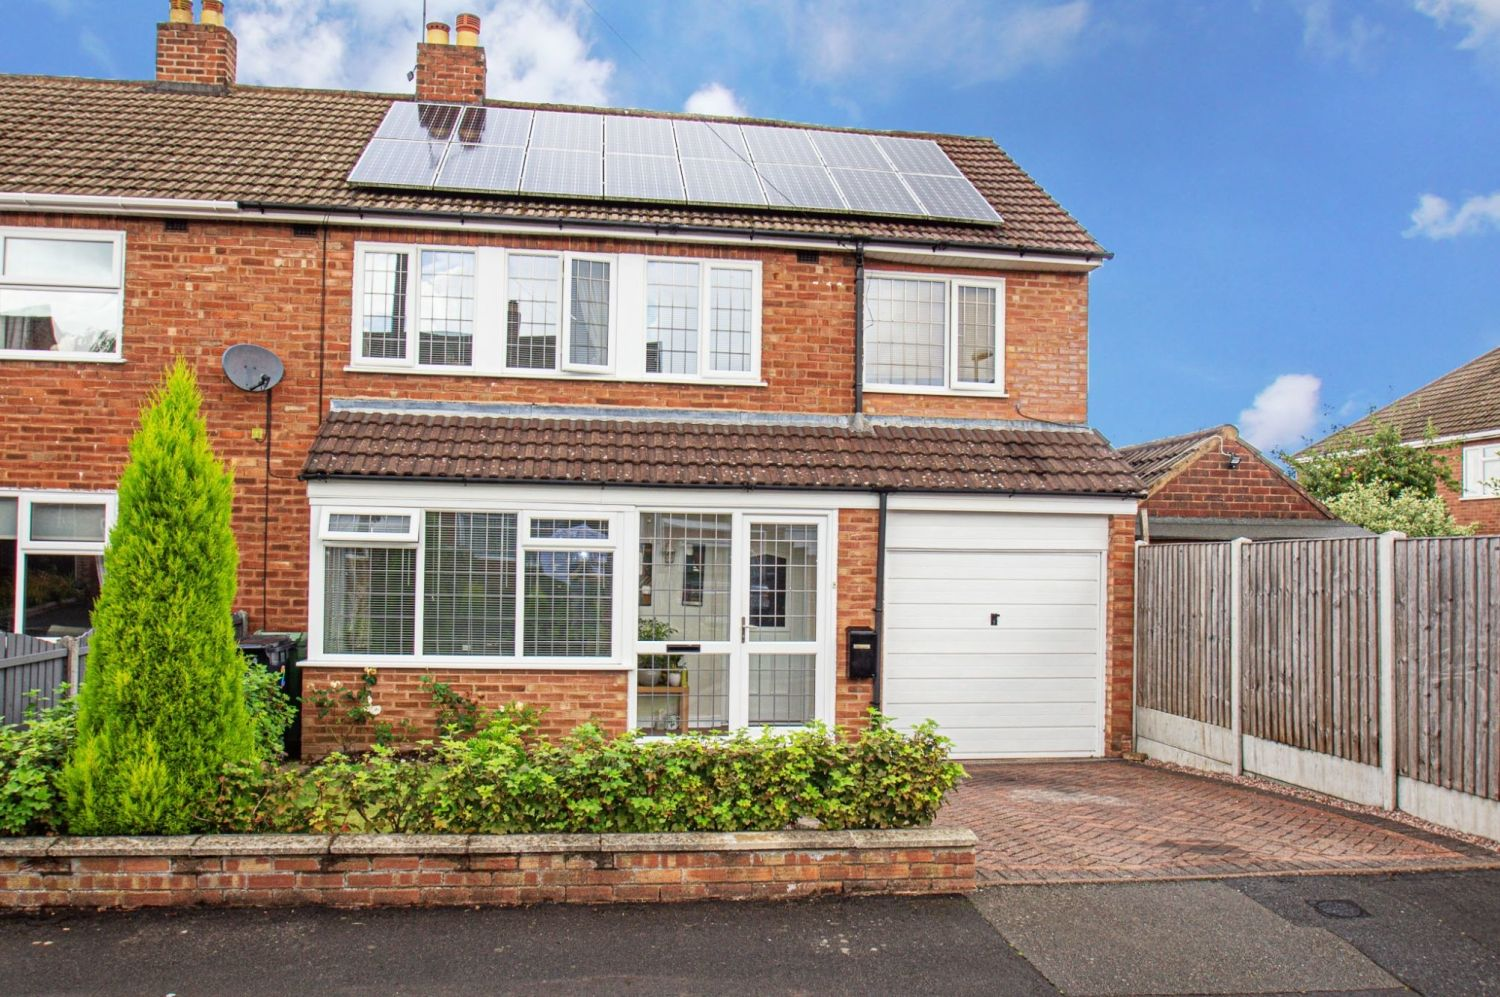 4 bed semi-detached for sale in Wheatcroft Close, Halesowen - Property Image 1